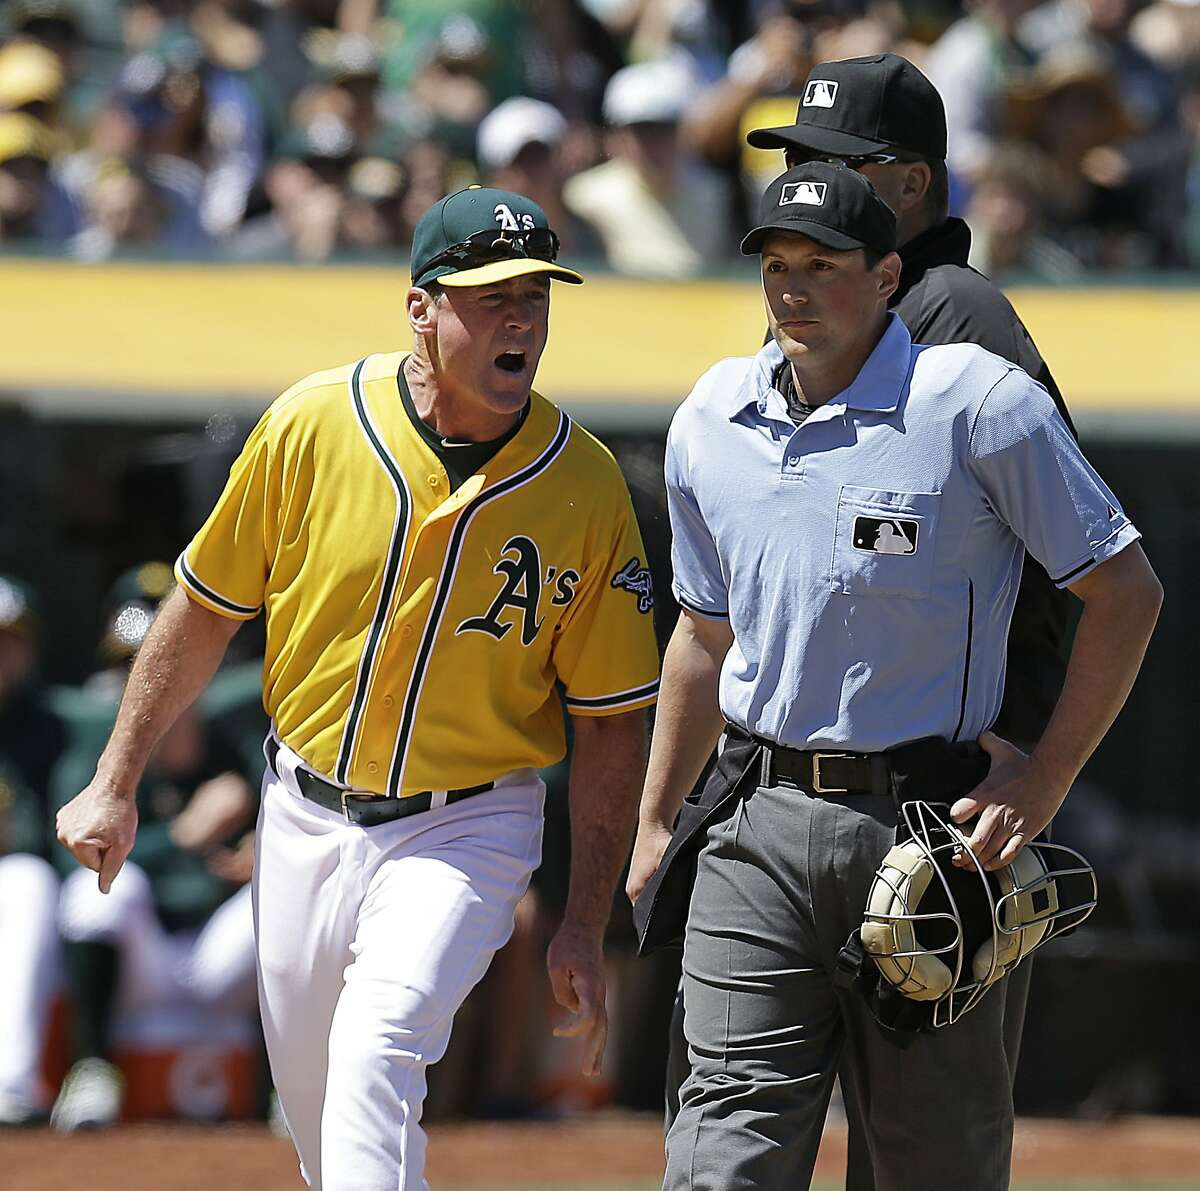 Oakland Athletics manager Bob Melvin, left, yells at home plate umpire Quinn Wolcott after being ejected in the fourth inning of a baseball game against the Houston Astros, Sunday, April 26, 2015, in Oakland, Calif. (AP Photo/Ben Margot)